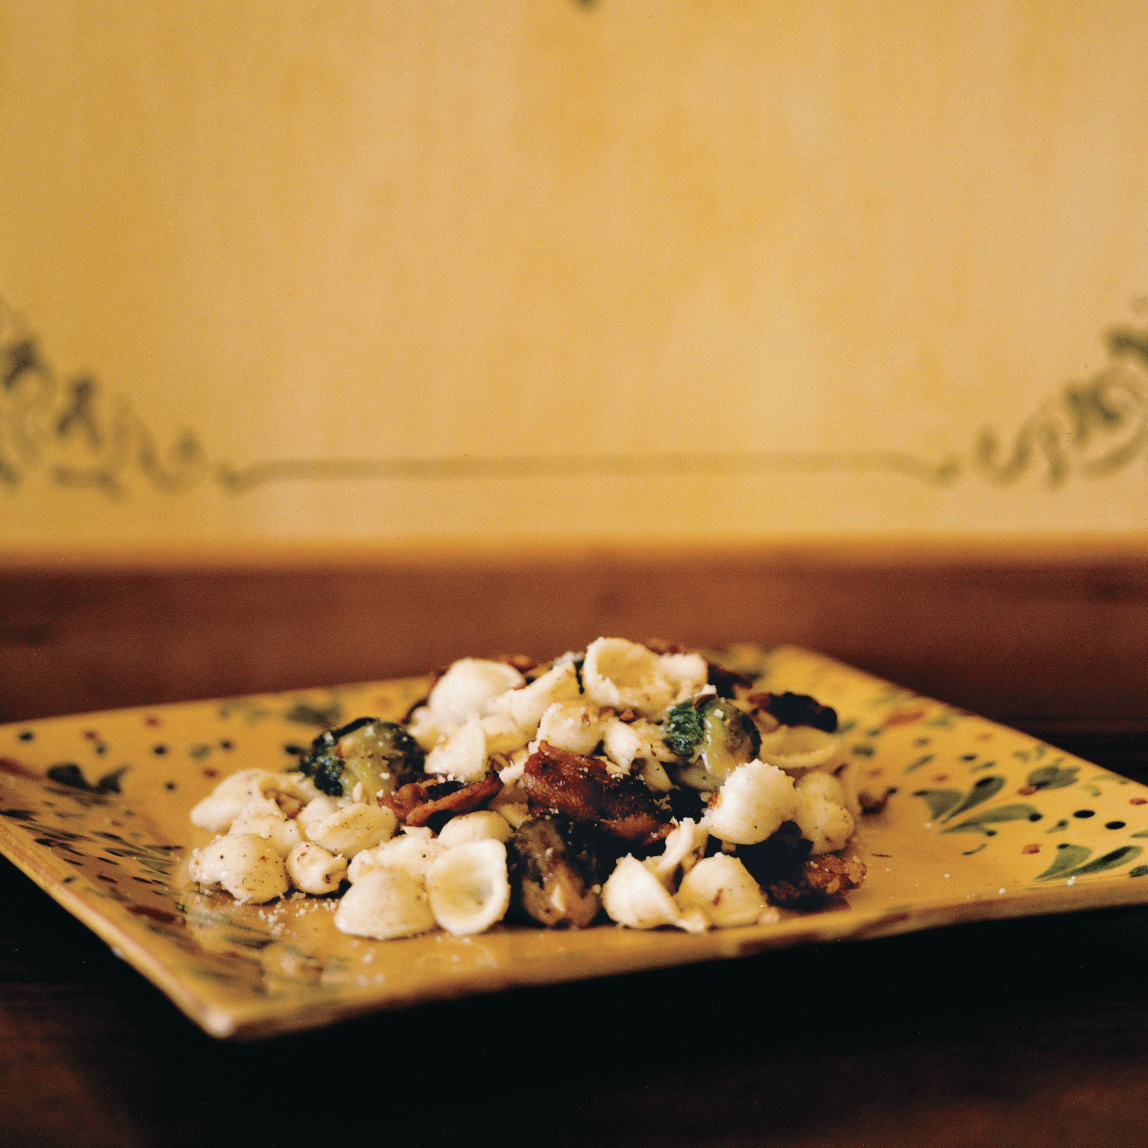 HD-200210-r-orecchiette-with-brussels-sprouts-and-bacon.jpg